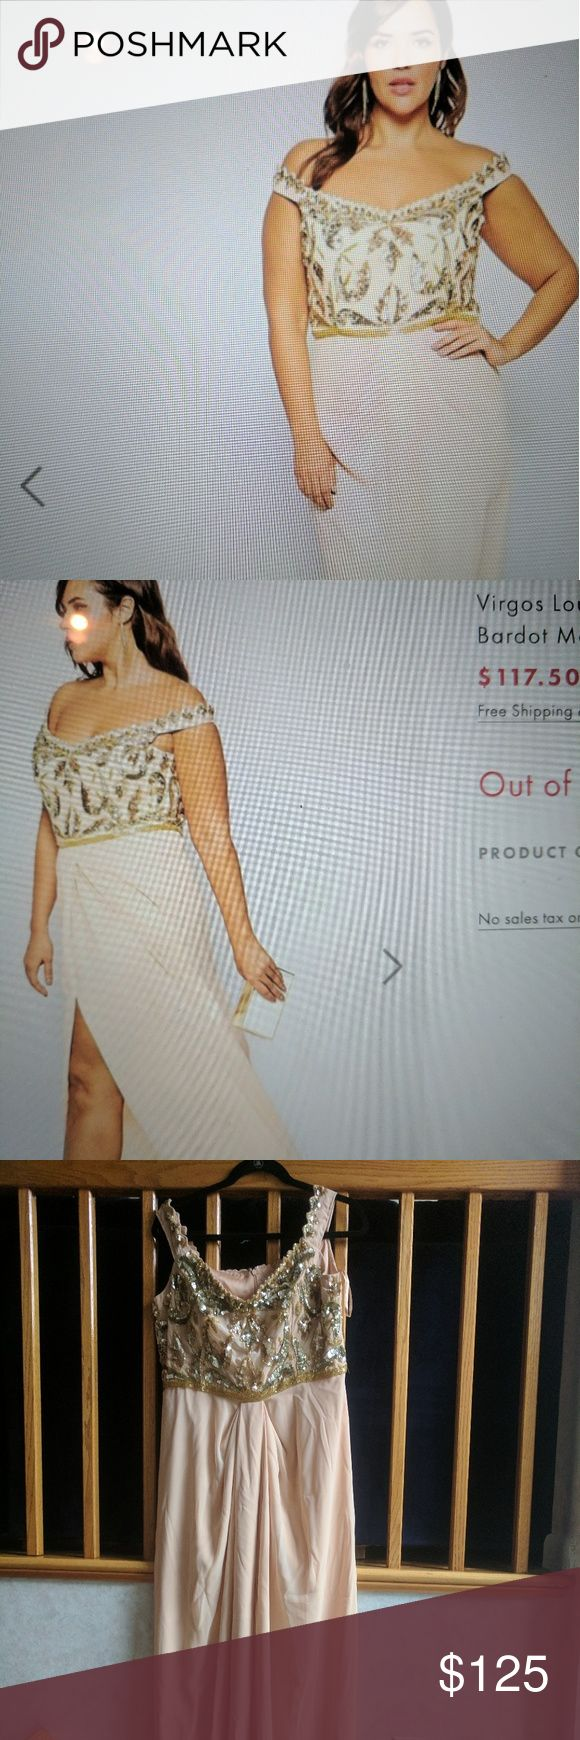 Virgos Lounge off the shoulder maxi dress Gorgeous! Beaded up top and light on the bottom. Added online photos to get the feel for the look. Ordered via Asos, sent wrong size and never returned. Tags on and brand new. Blush and champagne, size fits more of a 16 as asos can run small sometimes. Paid over $200 originally and now out of stock (see photo) ASOS Curve Dresses Wedding